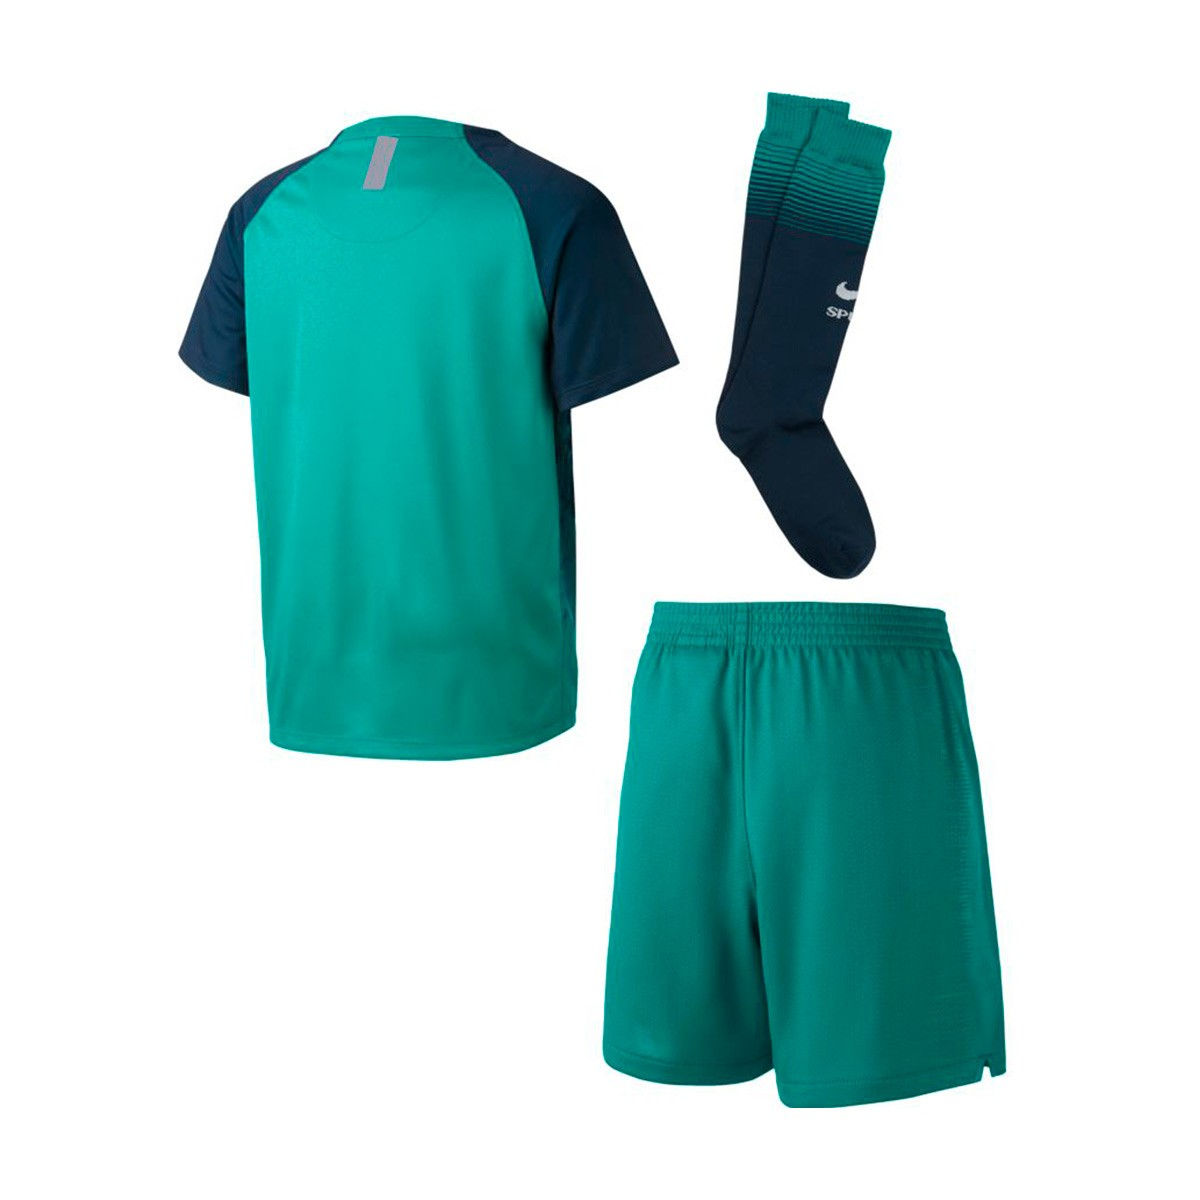 Kit Nike Kids Tottenham Hotspur Fc 2018 2019 Third Neptune Green Armory Navy Football Store Futbol Emotion